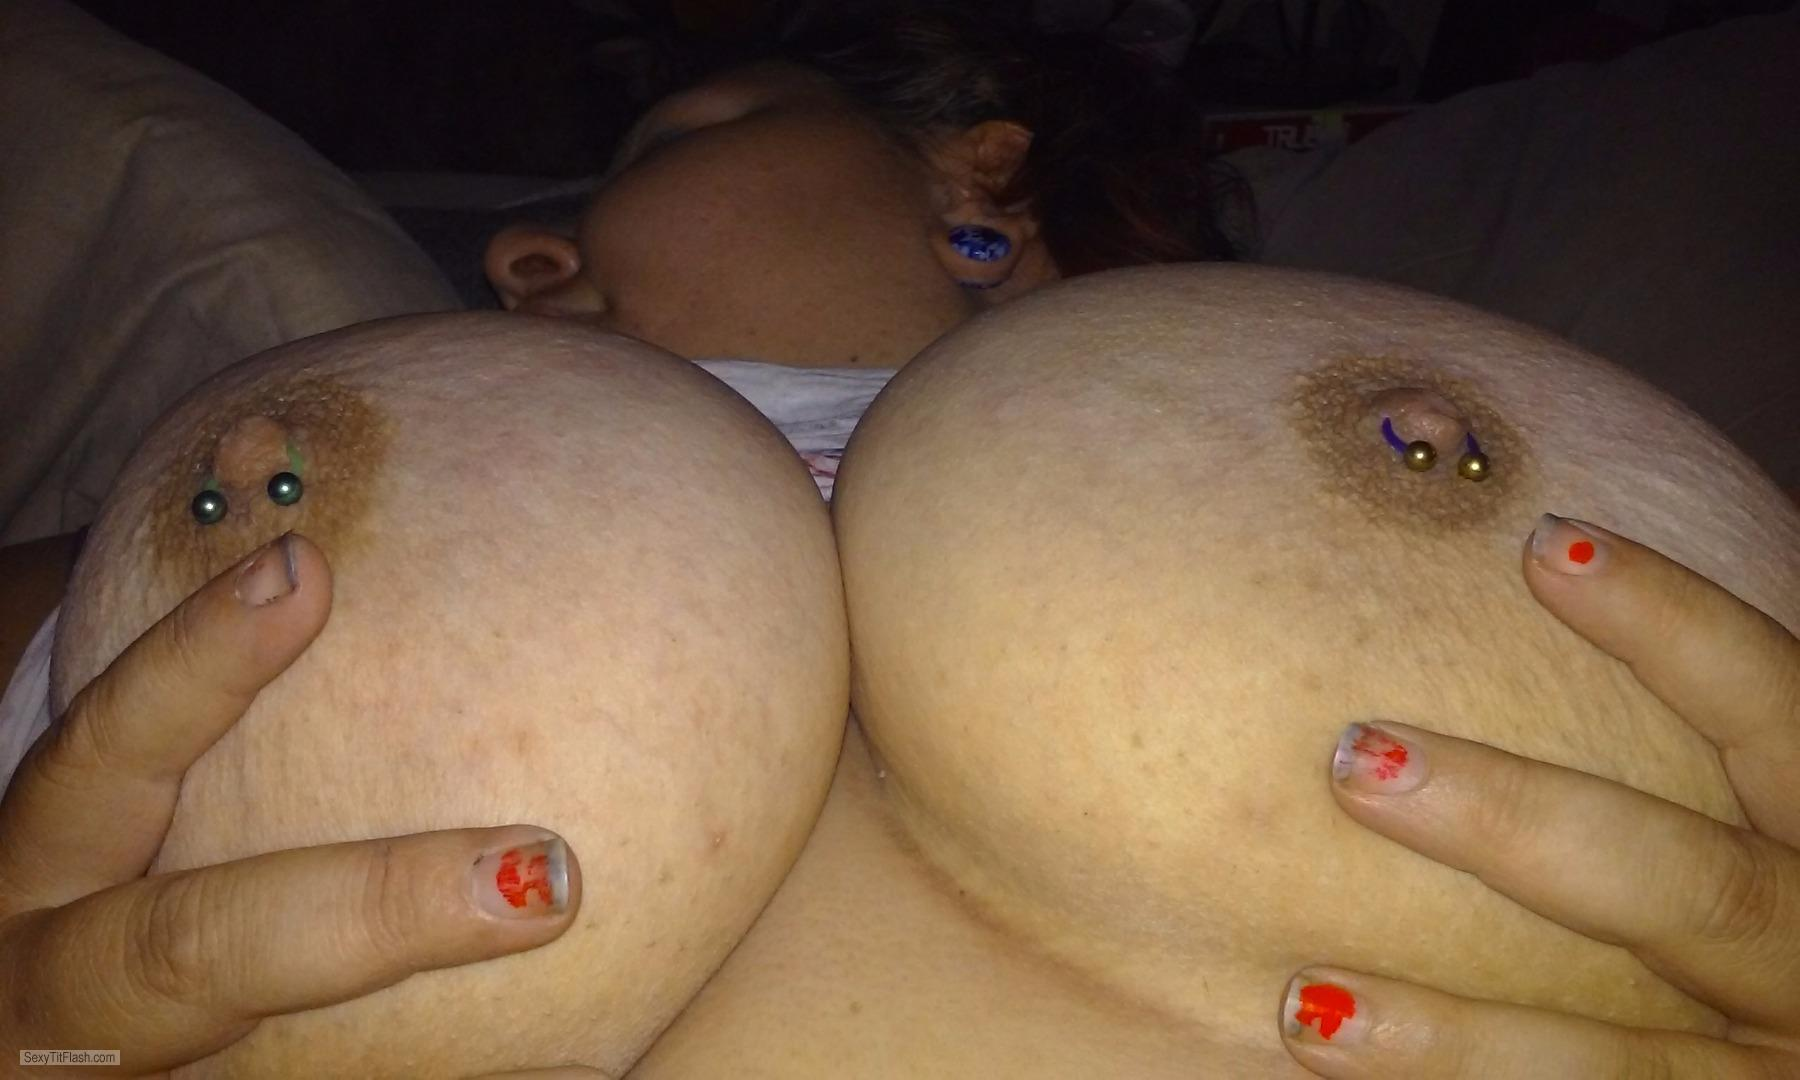 My Very big Tits Piercednchubby